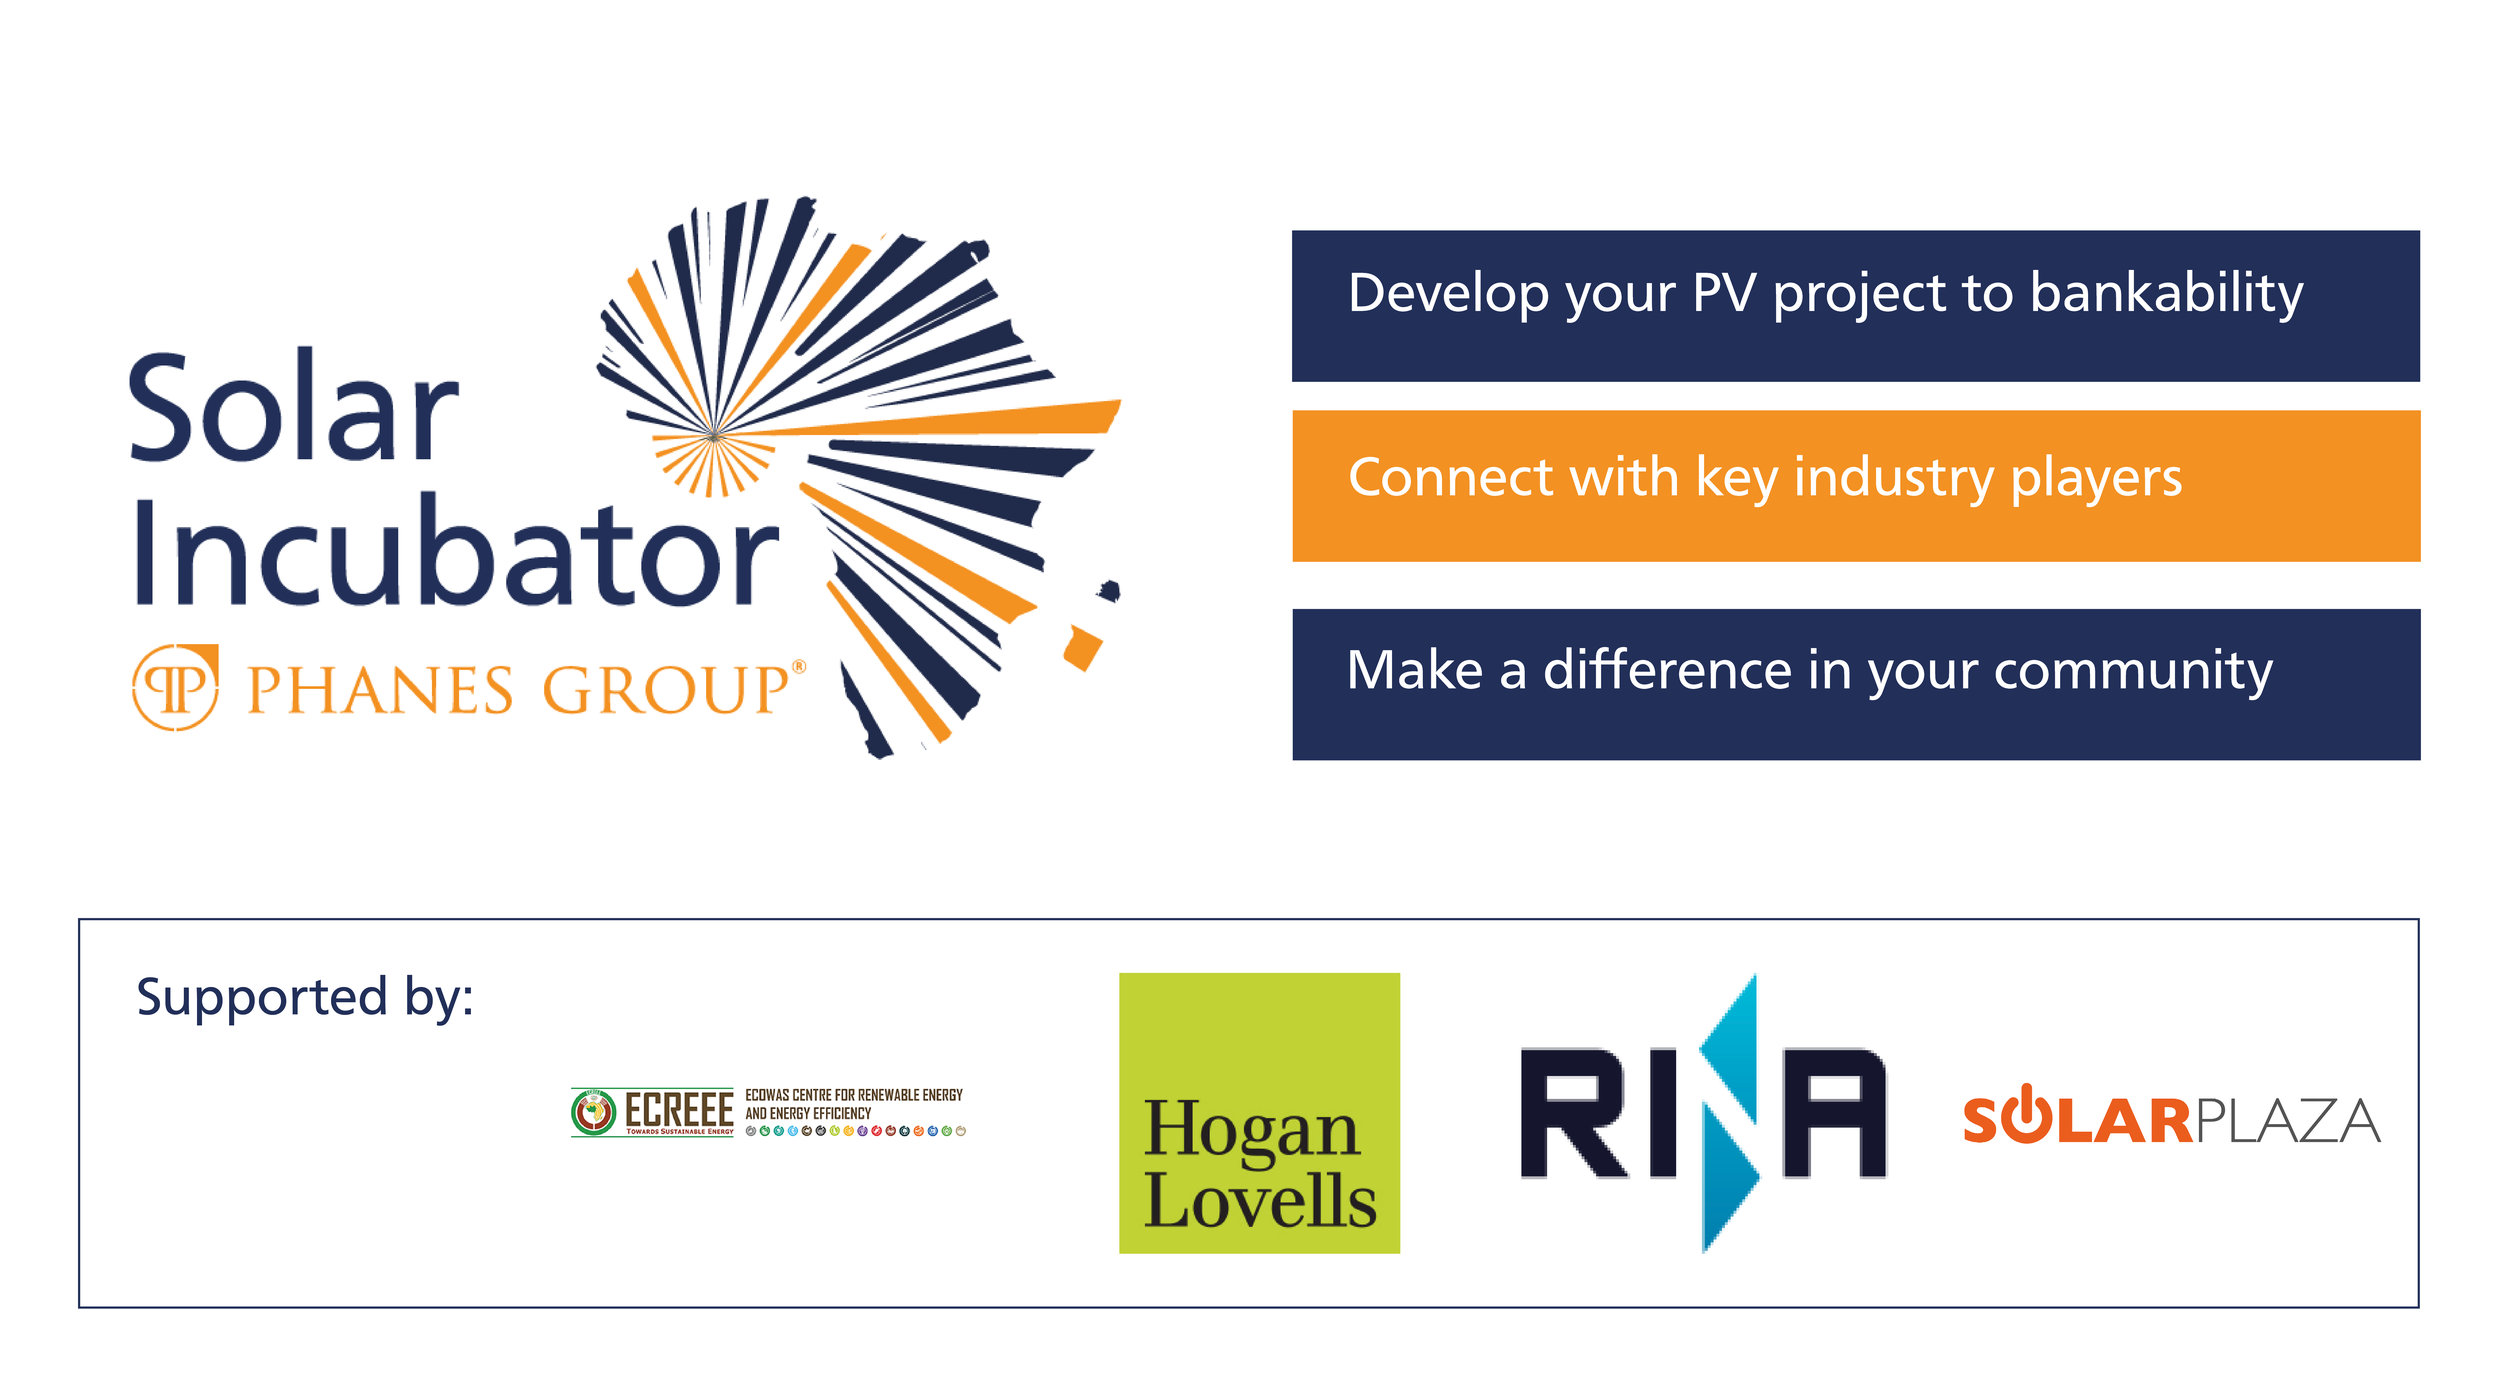 Solar_Incubator_Banner_website_banner_applications_page_2019.png